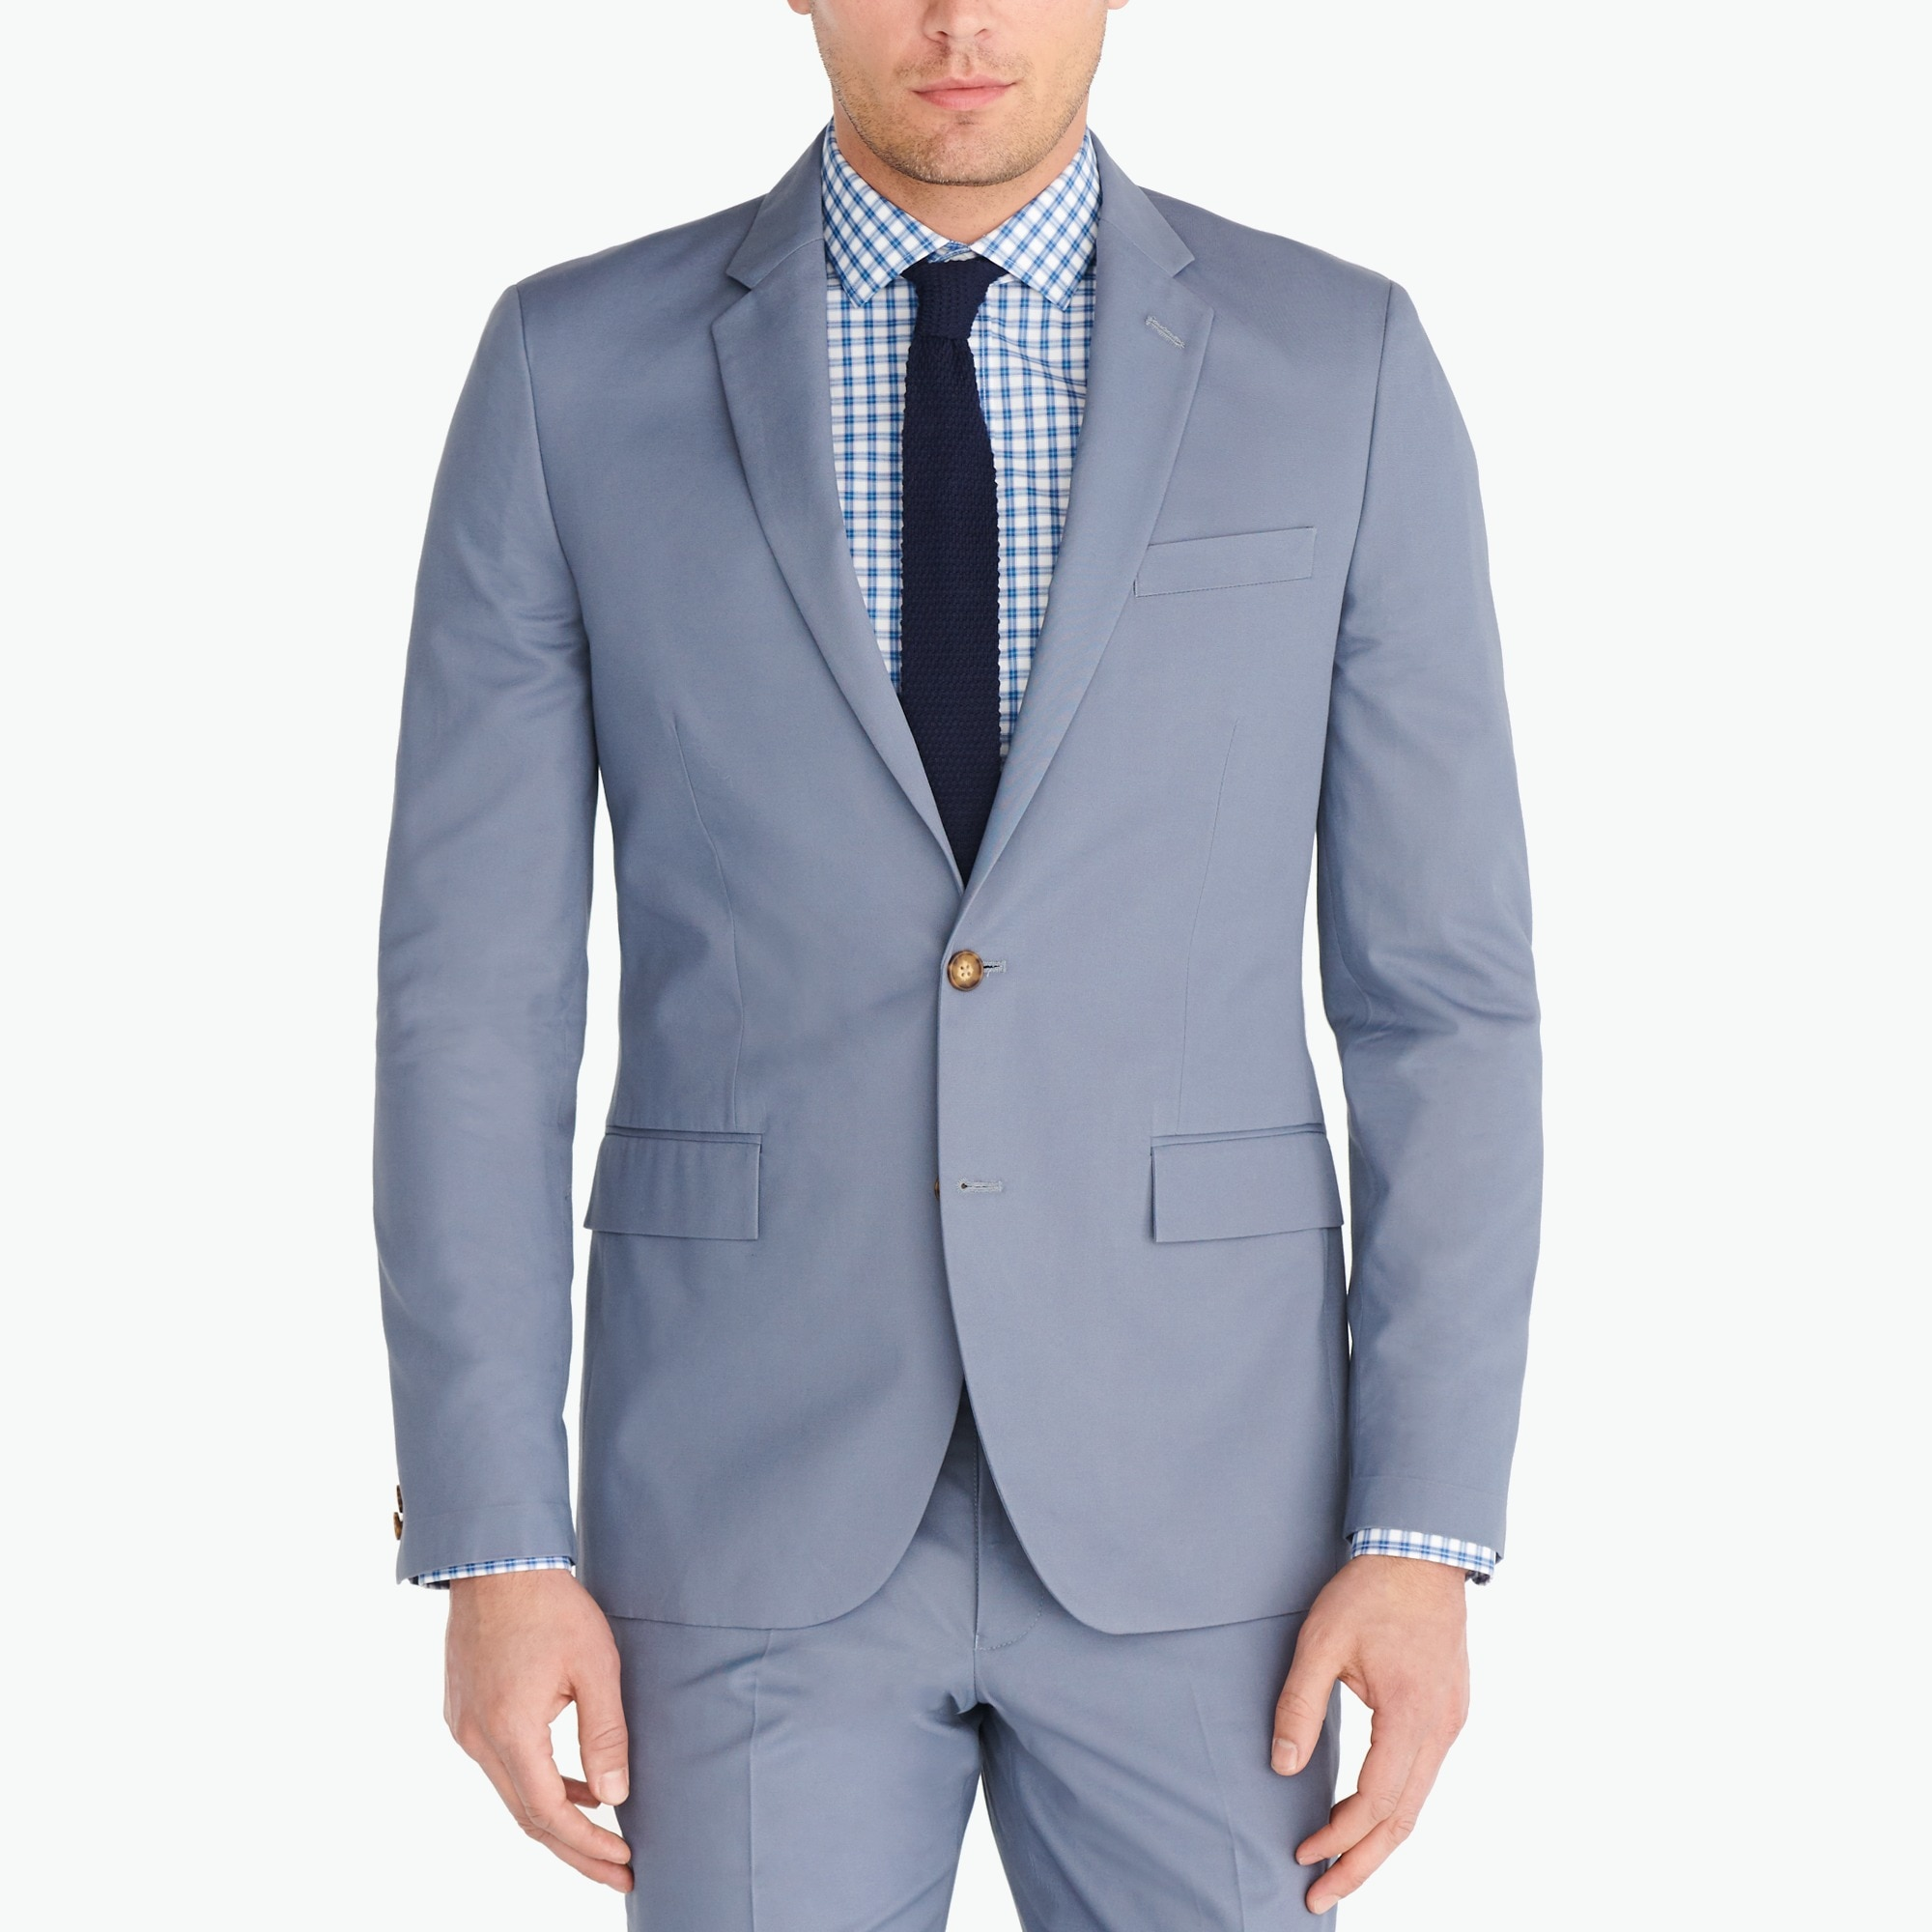 slim-fit thompson suit jacket in chino : factorymen suits under $200